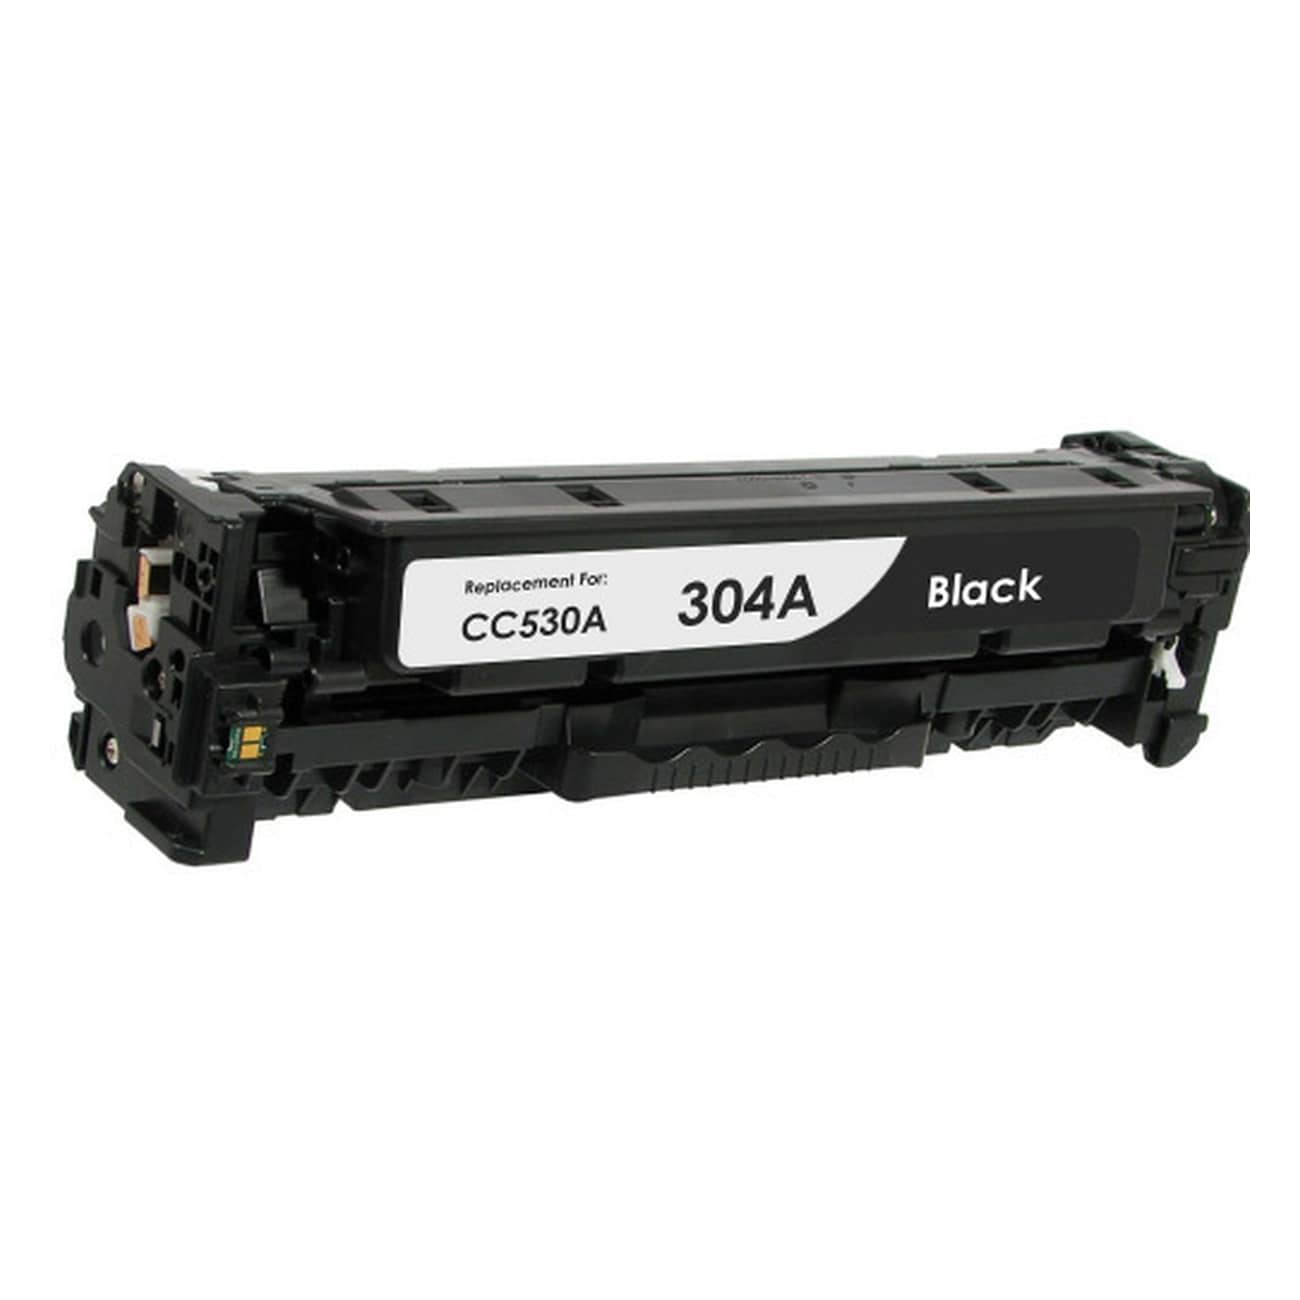 CC530A - Compatible HP Black Toner Cartridge